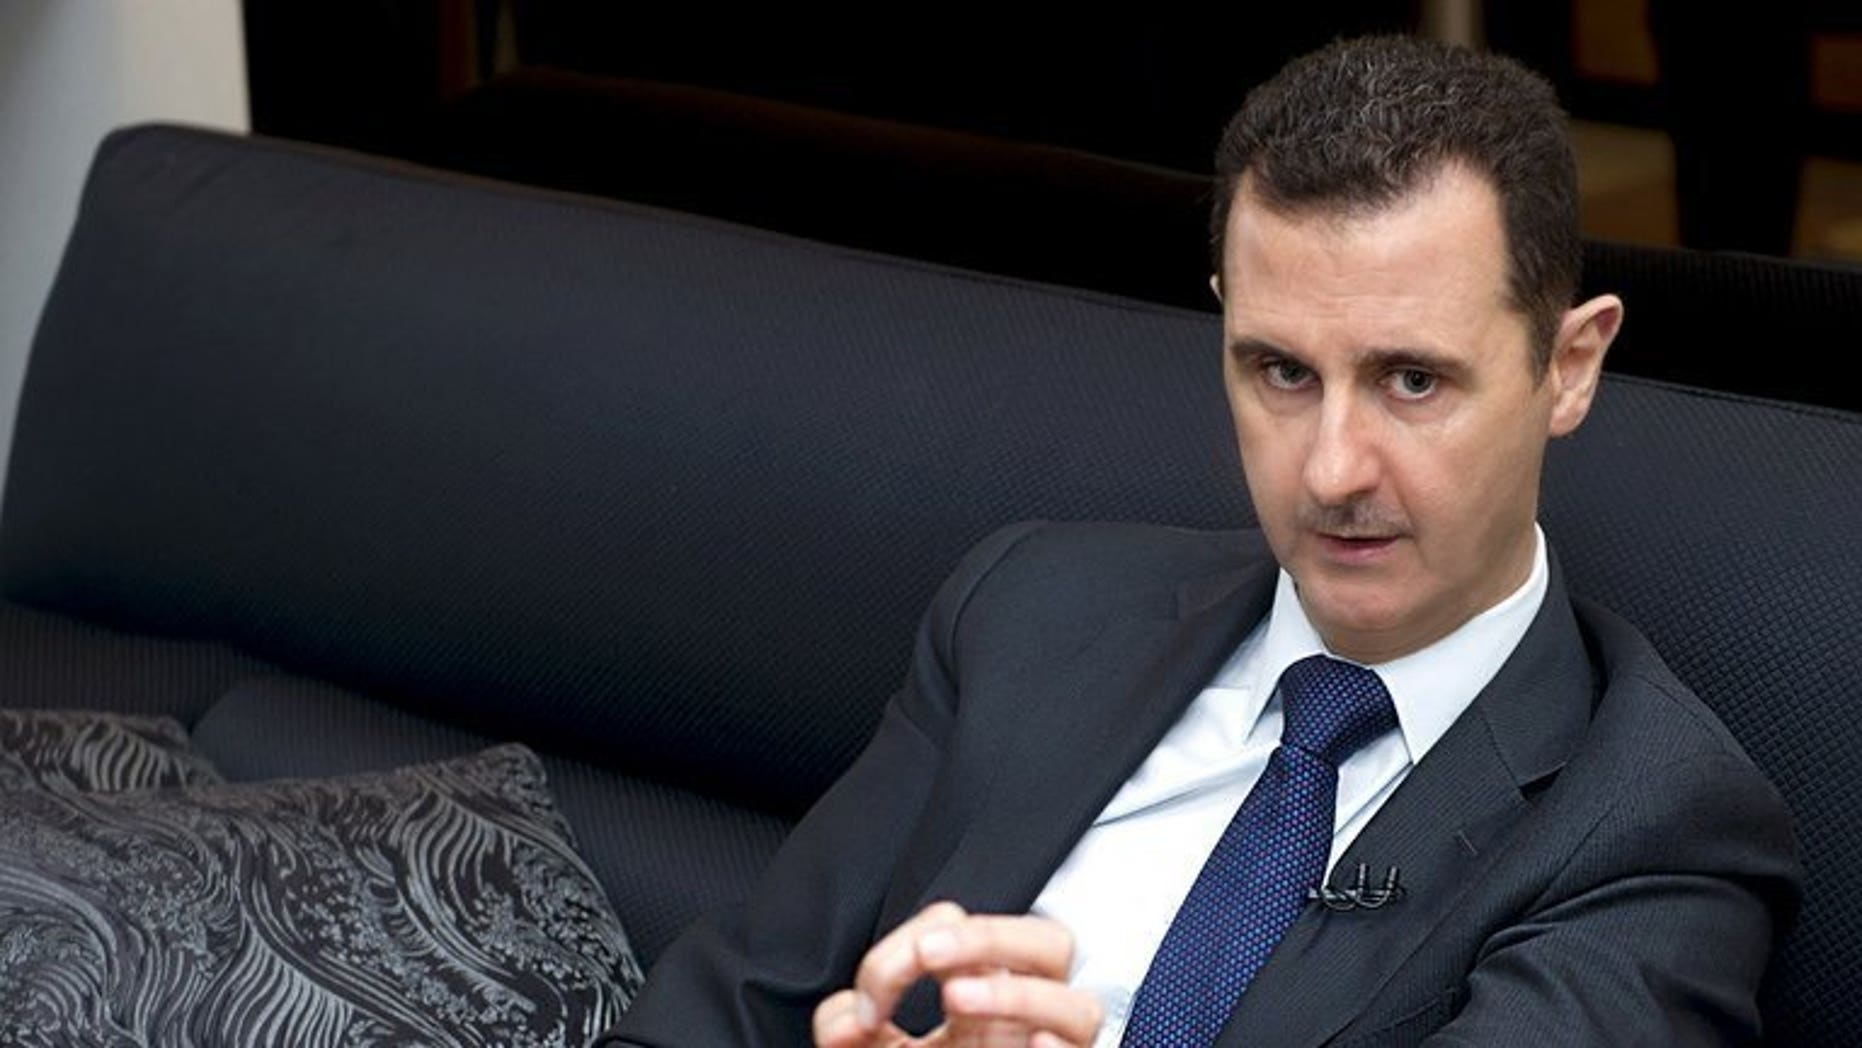 A handout picture released by the Syrian Arab News Agency (SANA) on June 17, 2013, shows Syrian President Bashar al-Assad speaking during an interview with the Frankfurter Allgemeine Zeitung newspaper in Damascus. Assad has passed a decree legalising private security firms, faced with a 29-month armed revolt against his rule that has pinned down the police, according to the SANA news agency.